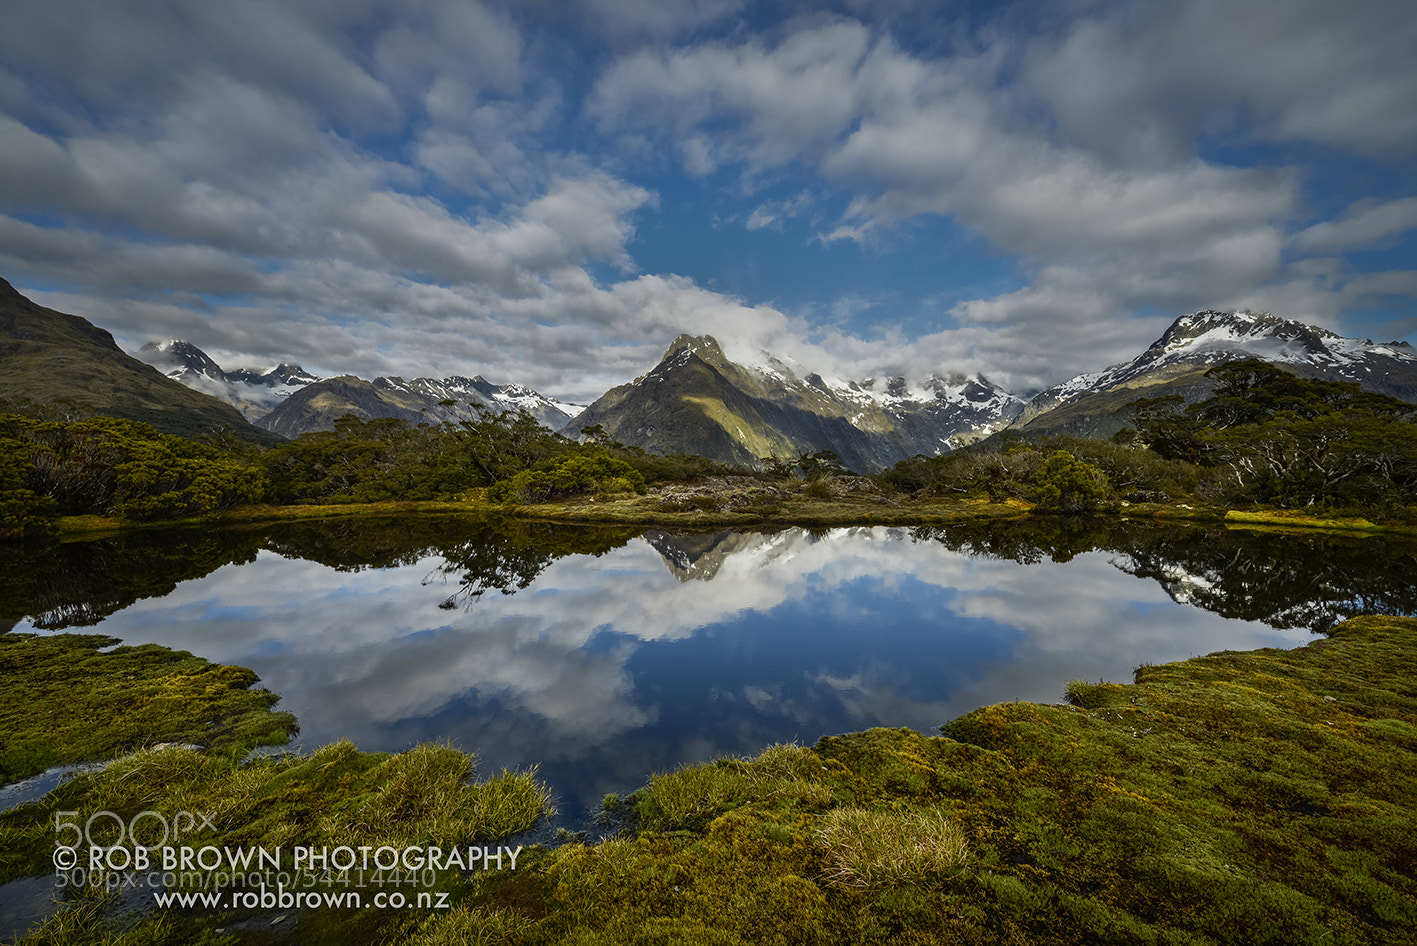 Photograph Key Summit, Fiordland by Rob Brown on 500px